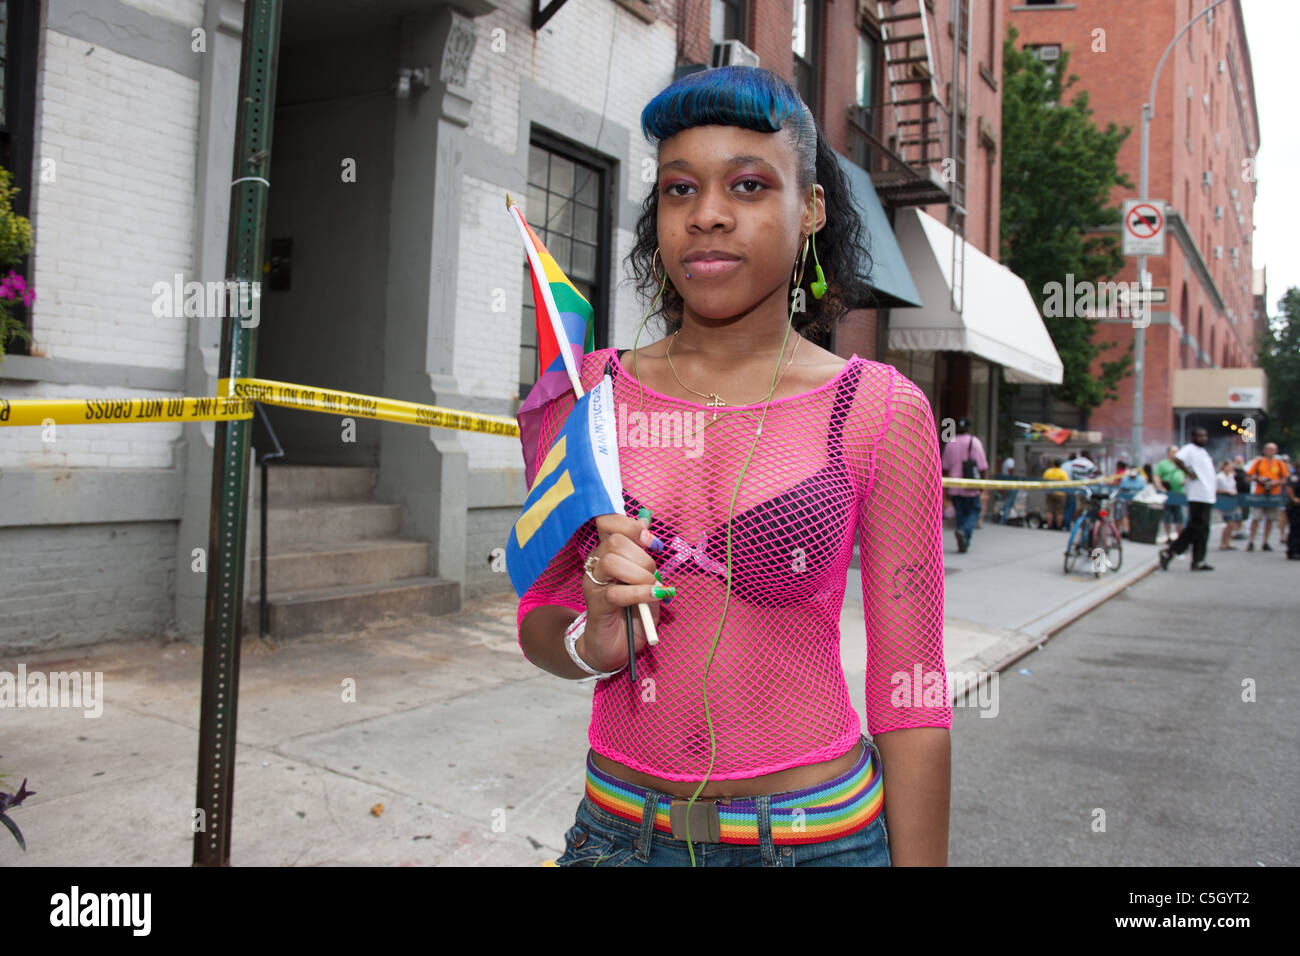 from Jessie black gay pride nyc 2009